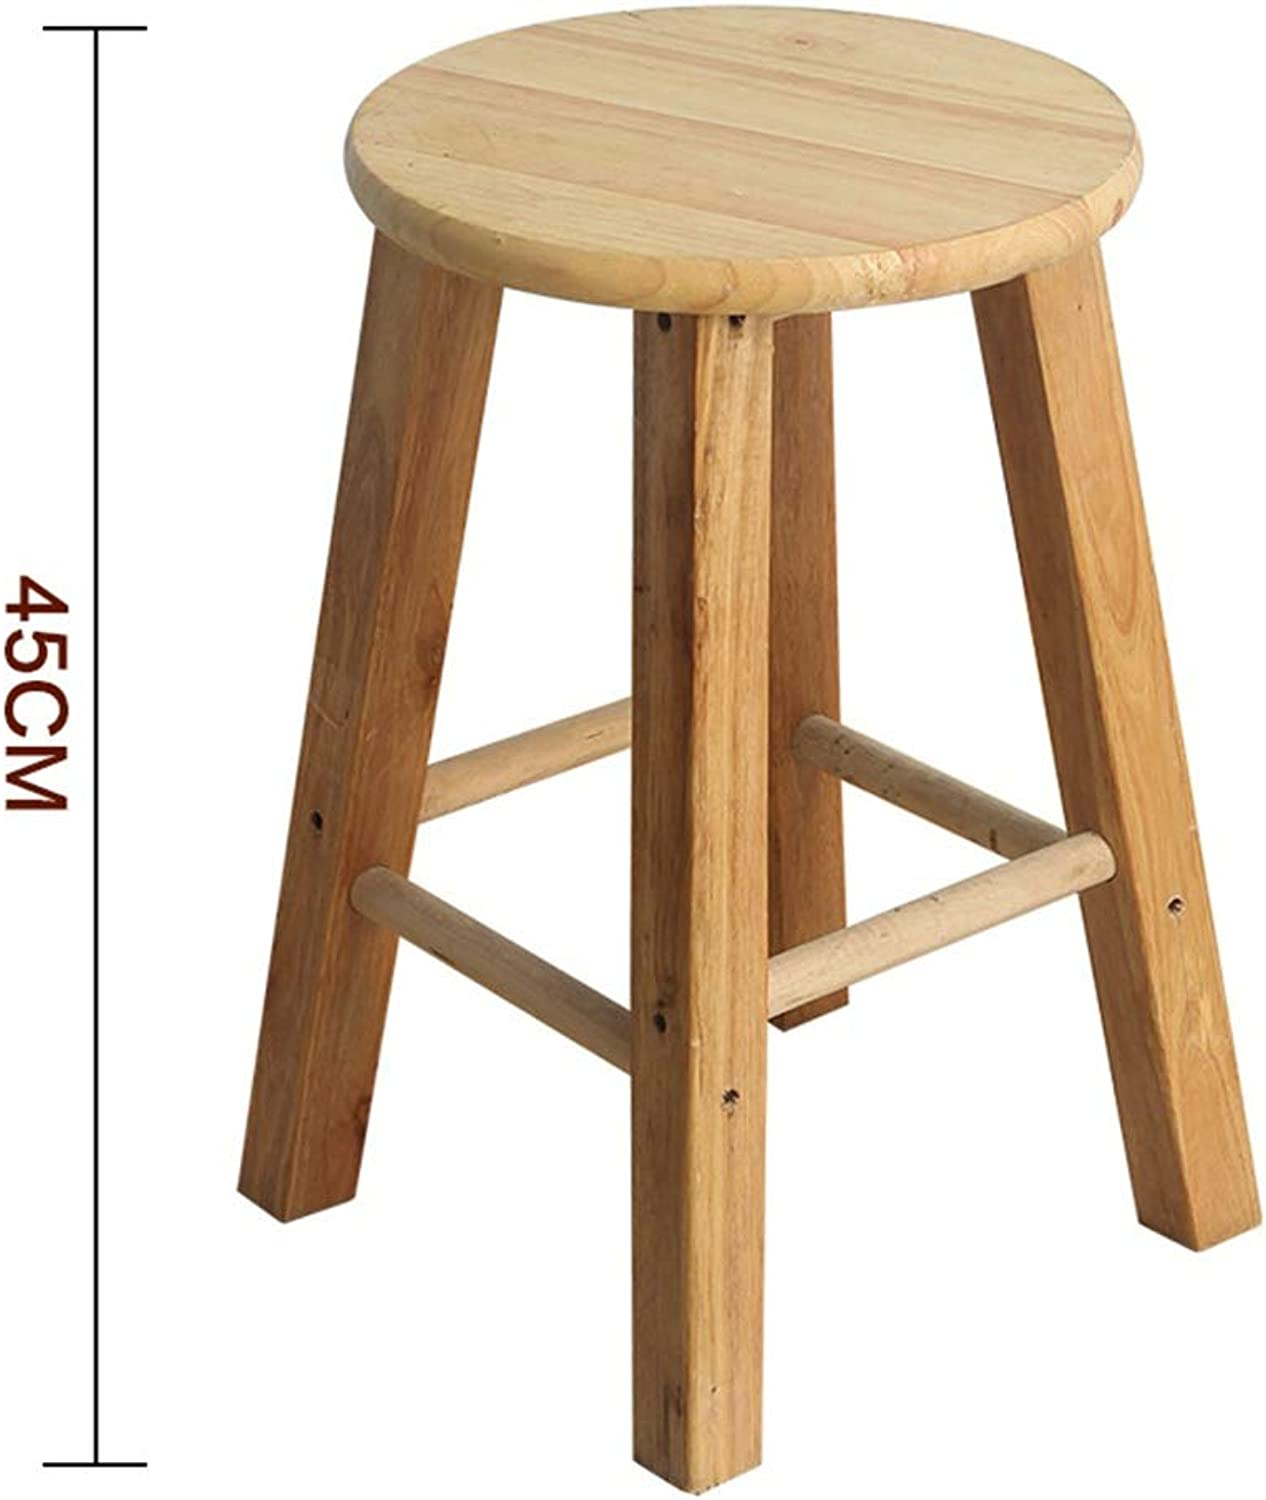 Stool Wooden Bar Stools, Round High Stools, for Counter Café Kitchen Breakfast Pub (Size   45cm)